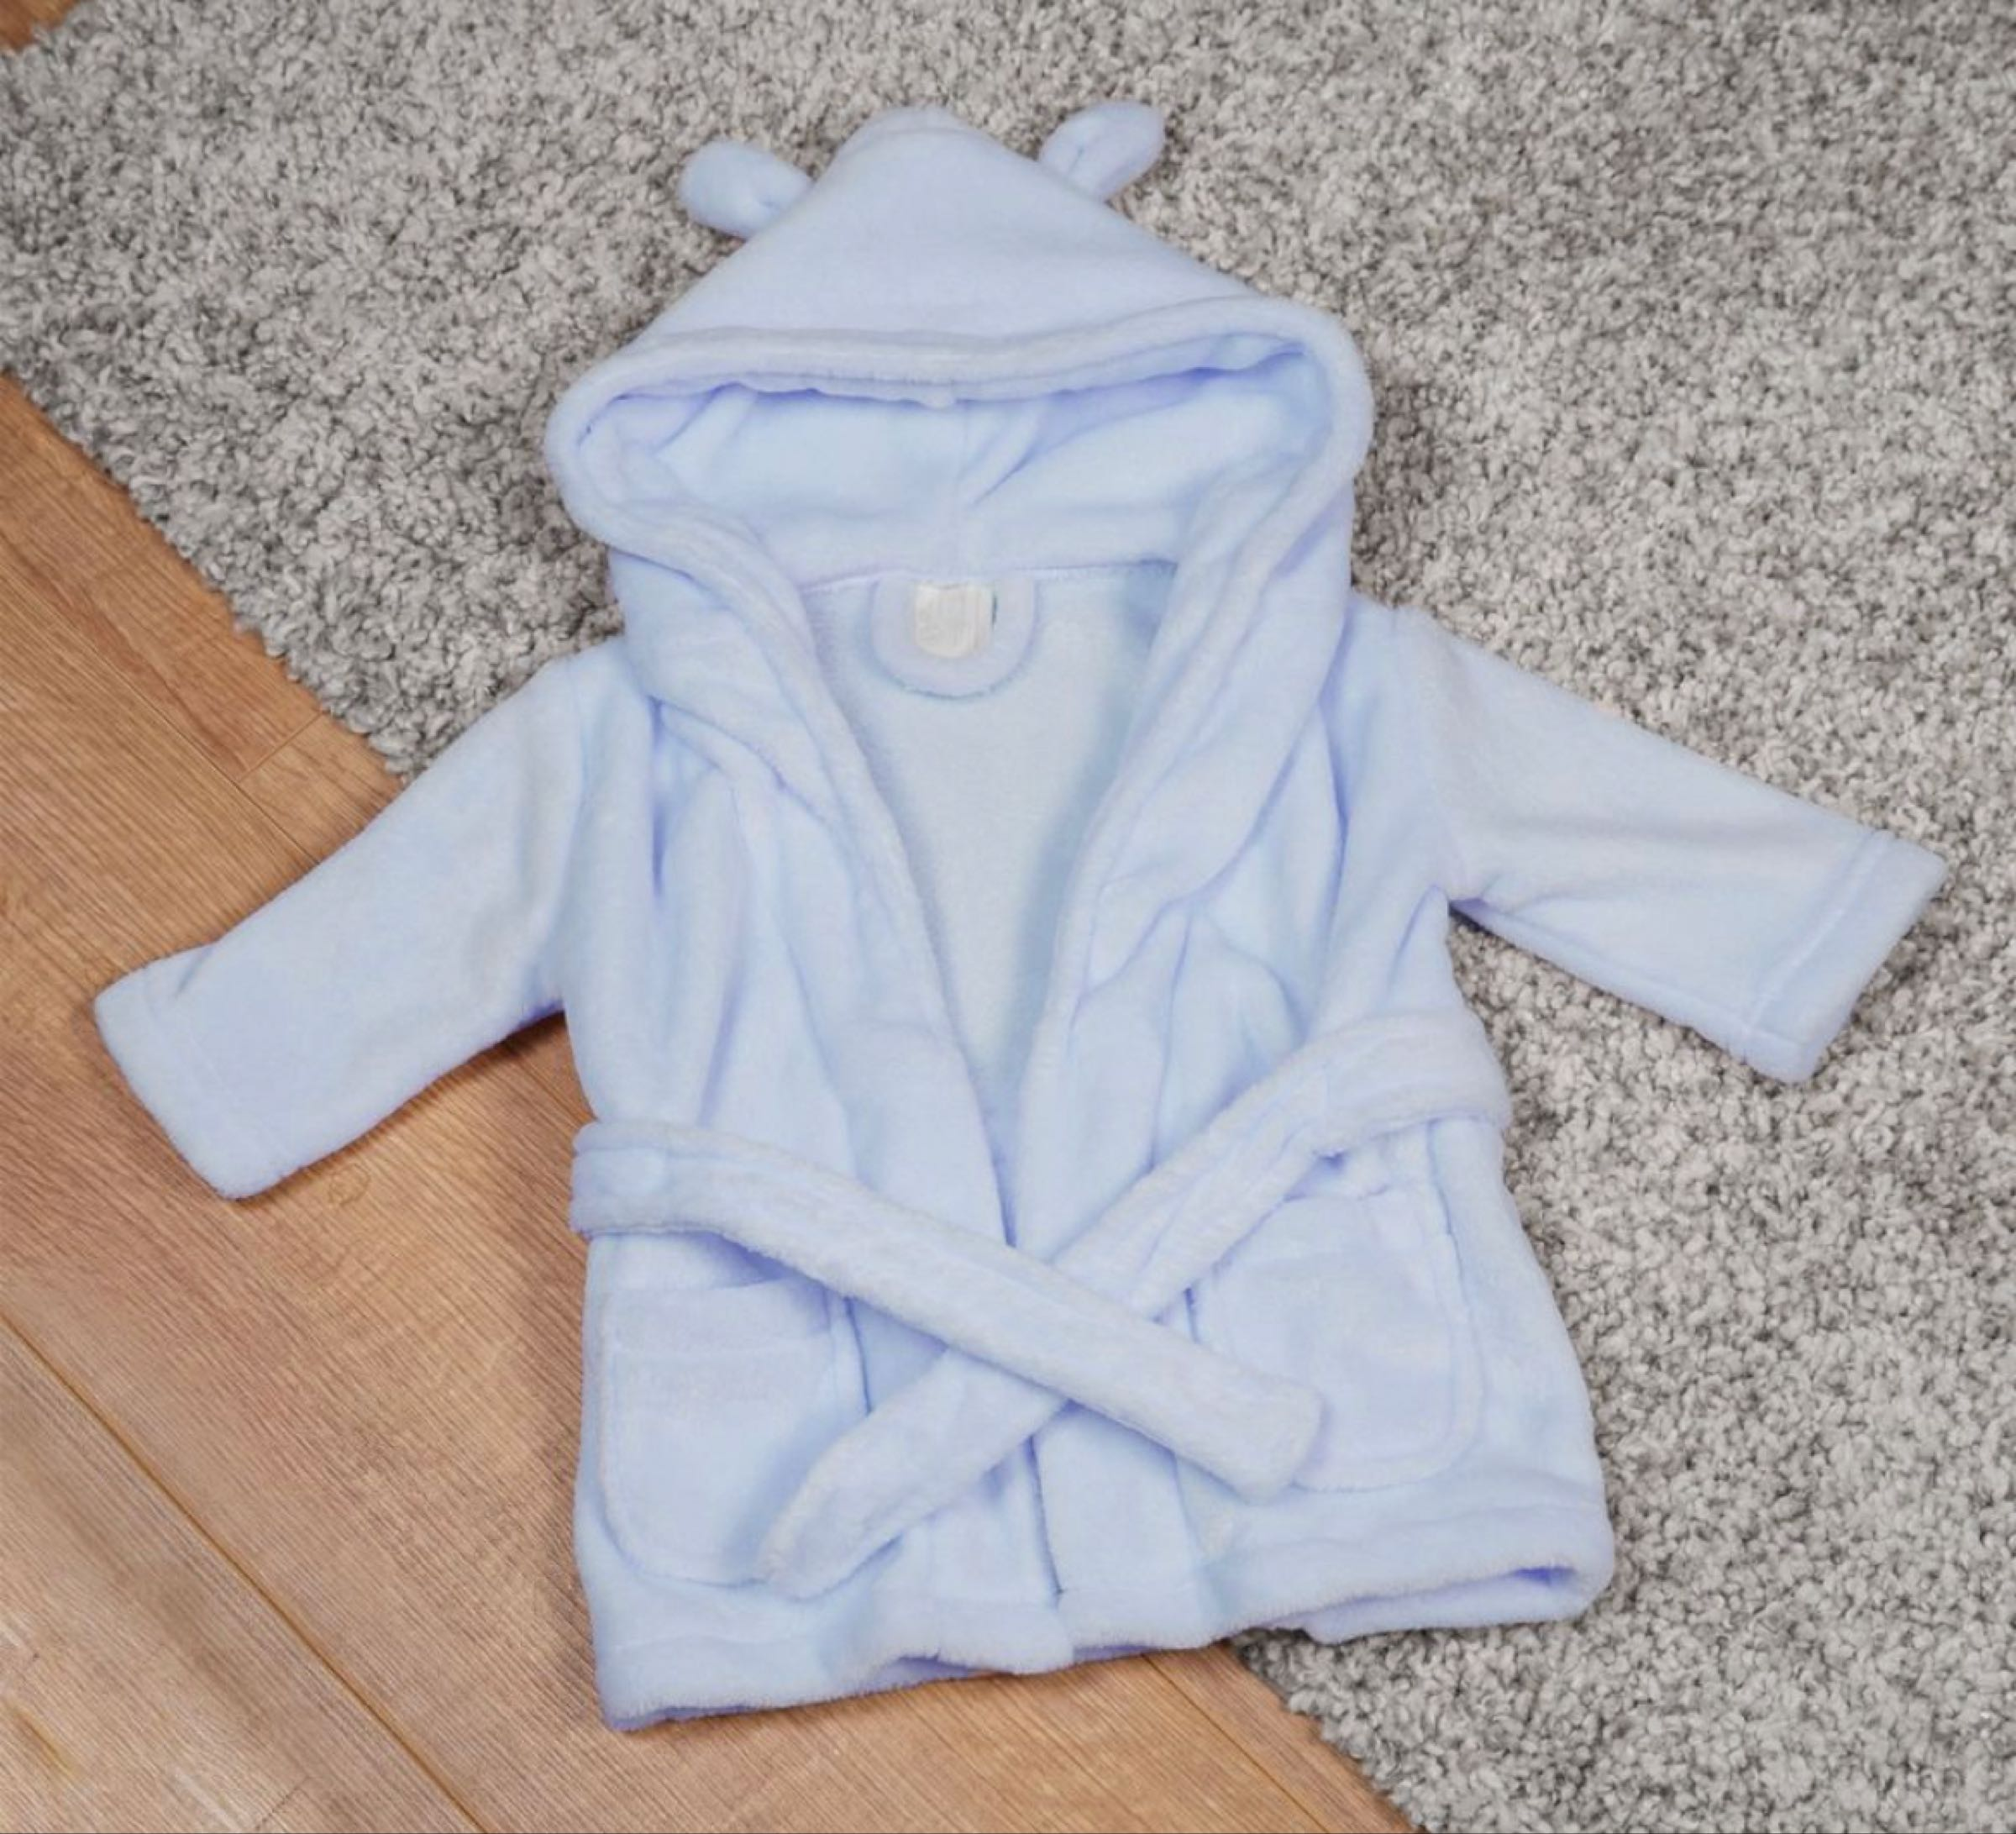 Bambino Baby's First Dressing Gown  Blue 3-6 months  in gift box